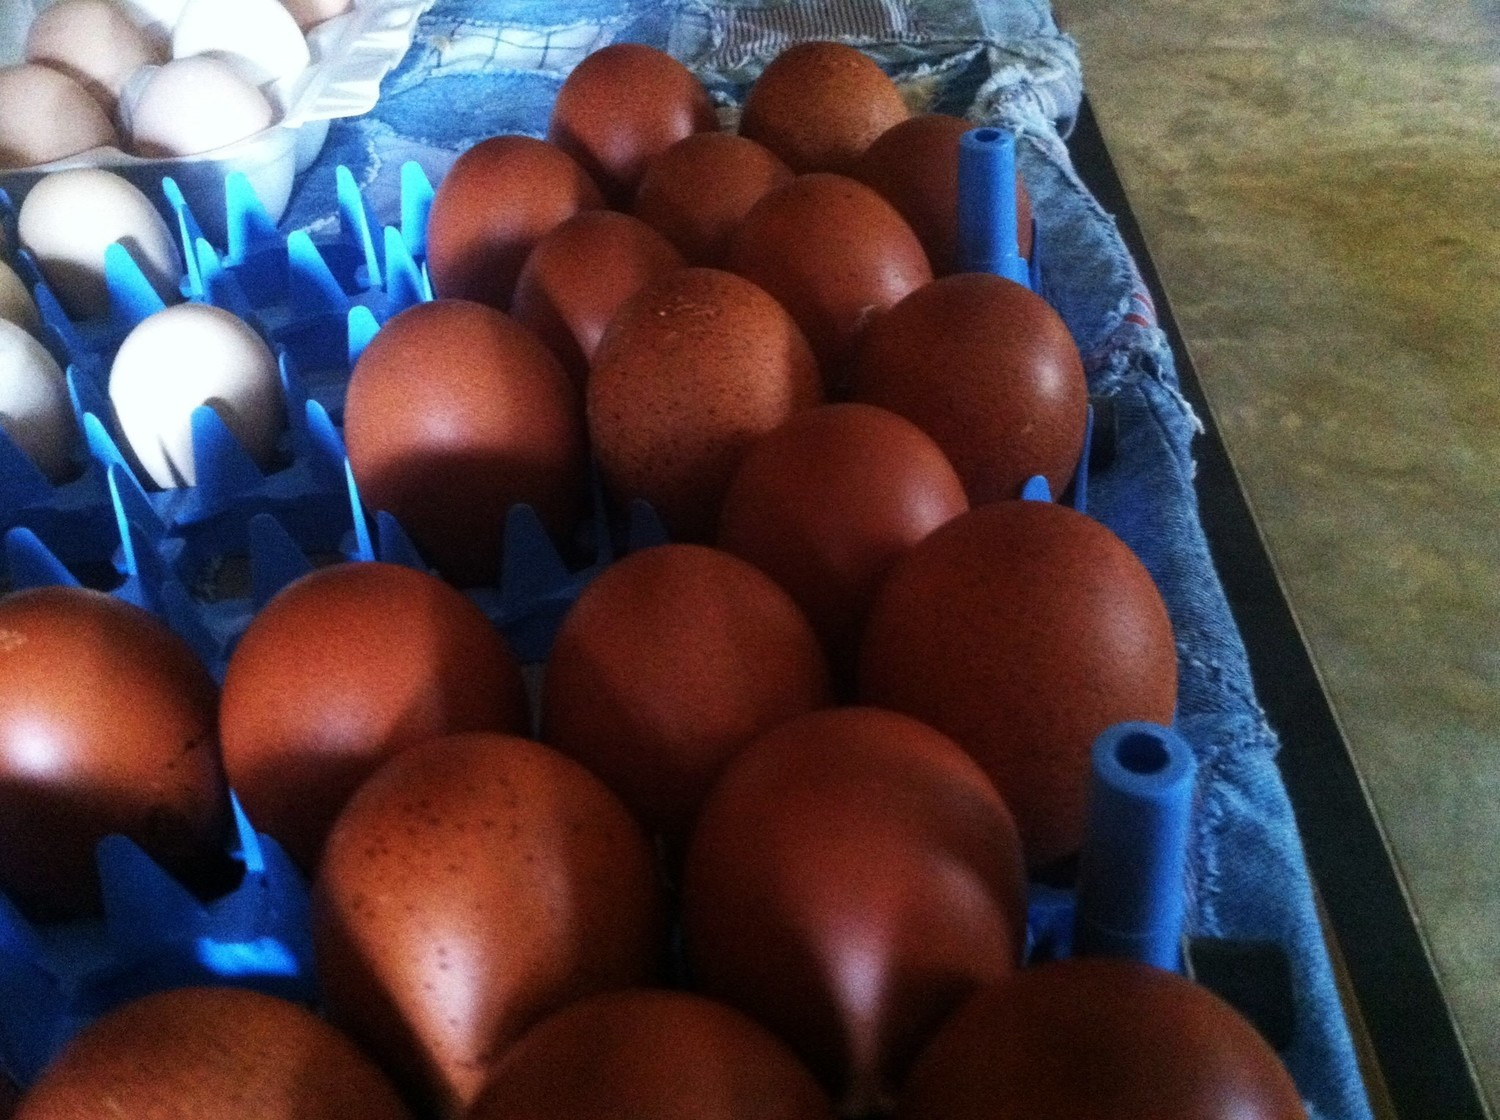 French Blue and Black Copper Marans Hatching Eggs